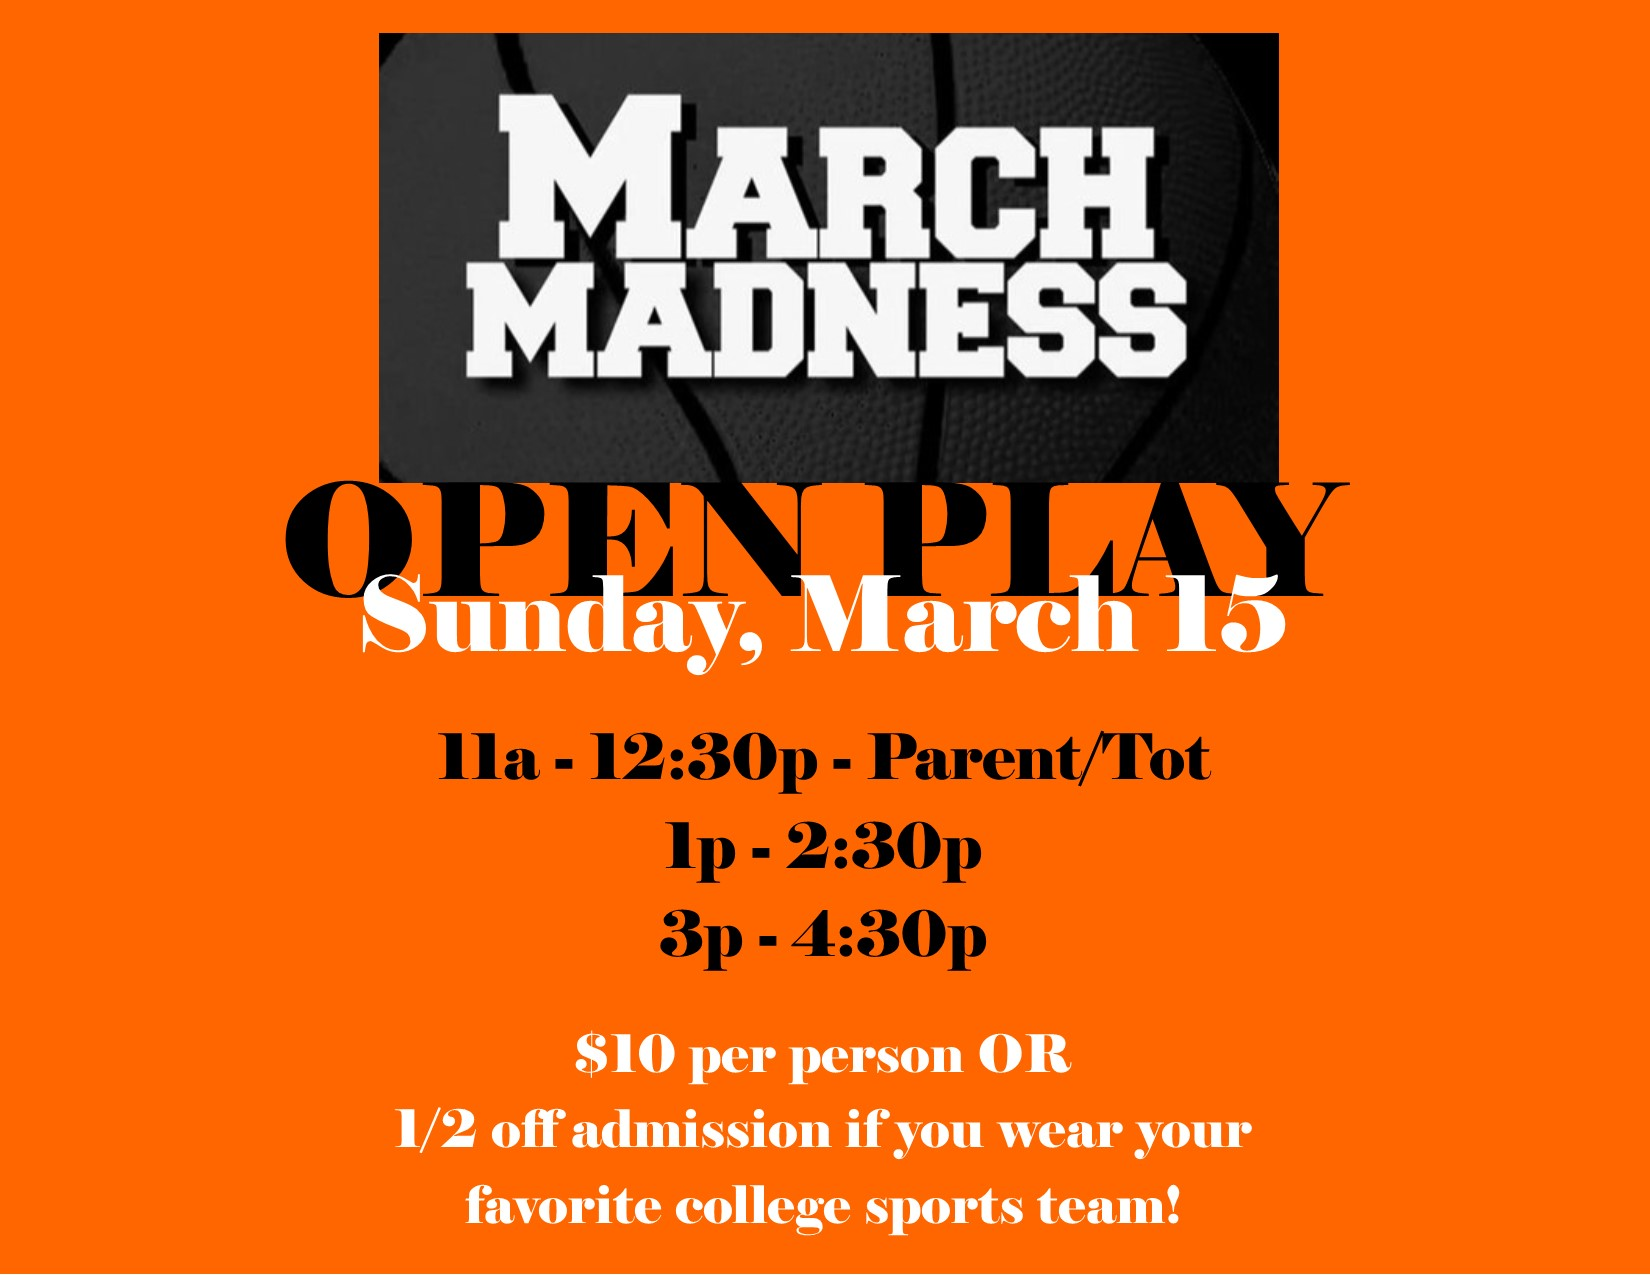 March Madness Open Play 2020